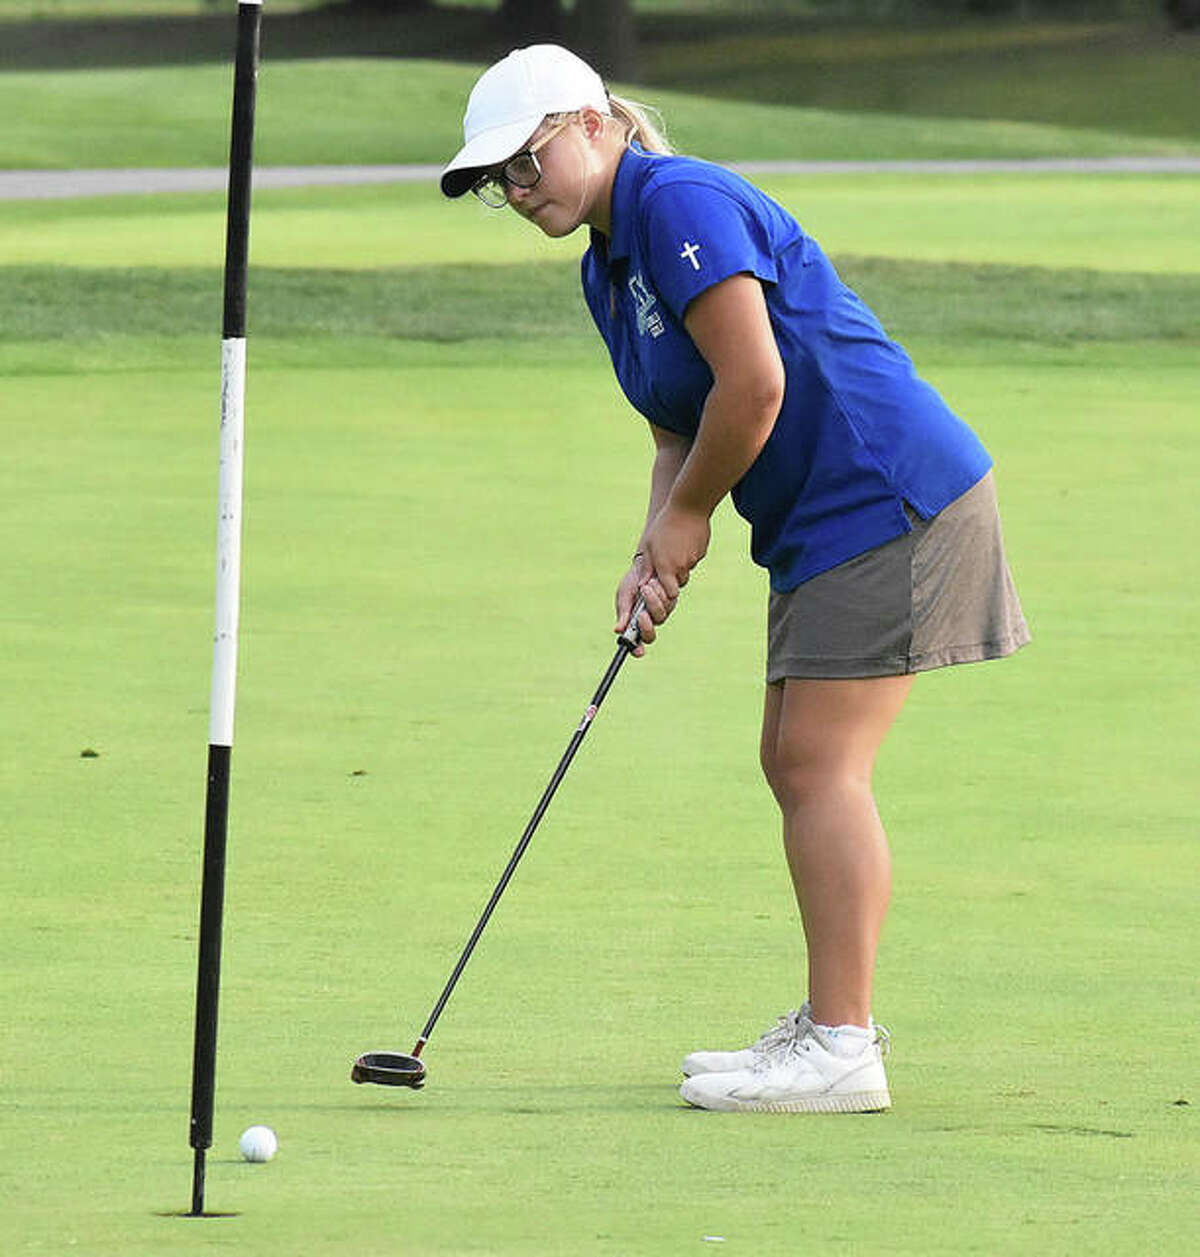 Marquette's Audrey Cain watches her putt roll into the cup for a birdie on the par 5, hole No. 9 at Spencer T. Olin during a Sept. 16 match in Alton. Cain will be back at Olin on Wednesday for the Marquette Class 1A Regional.